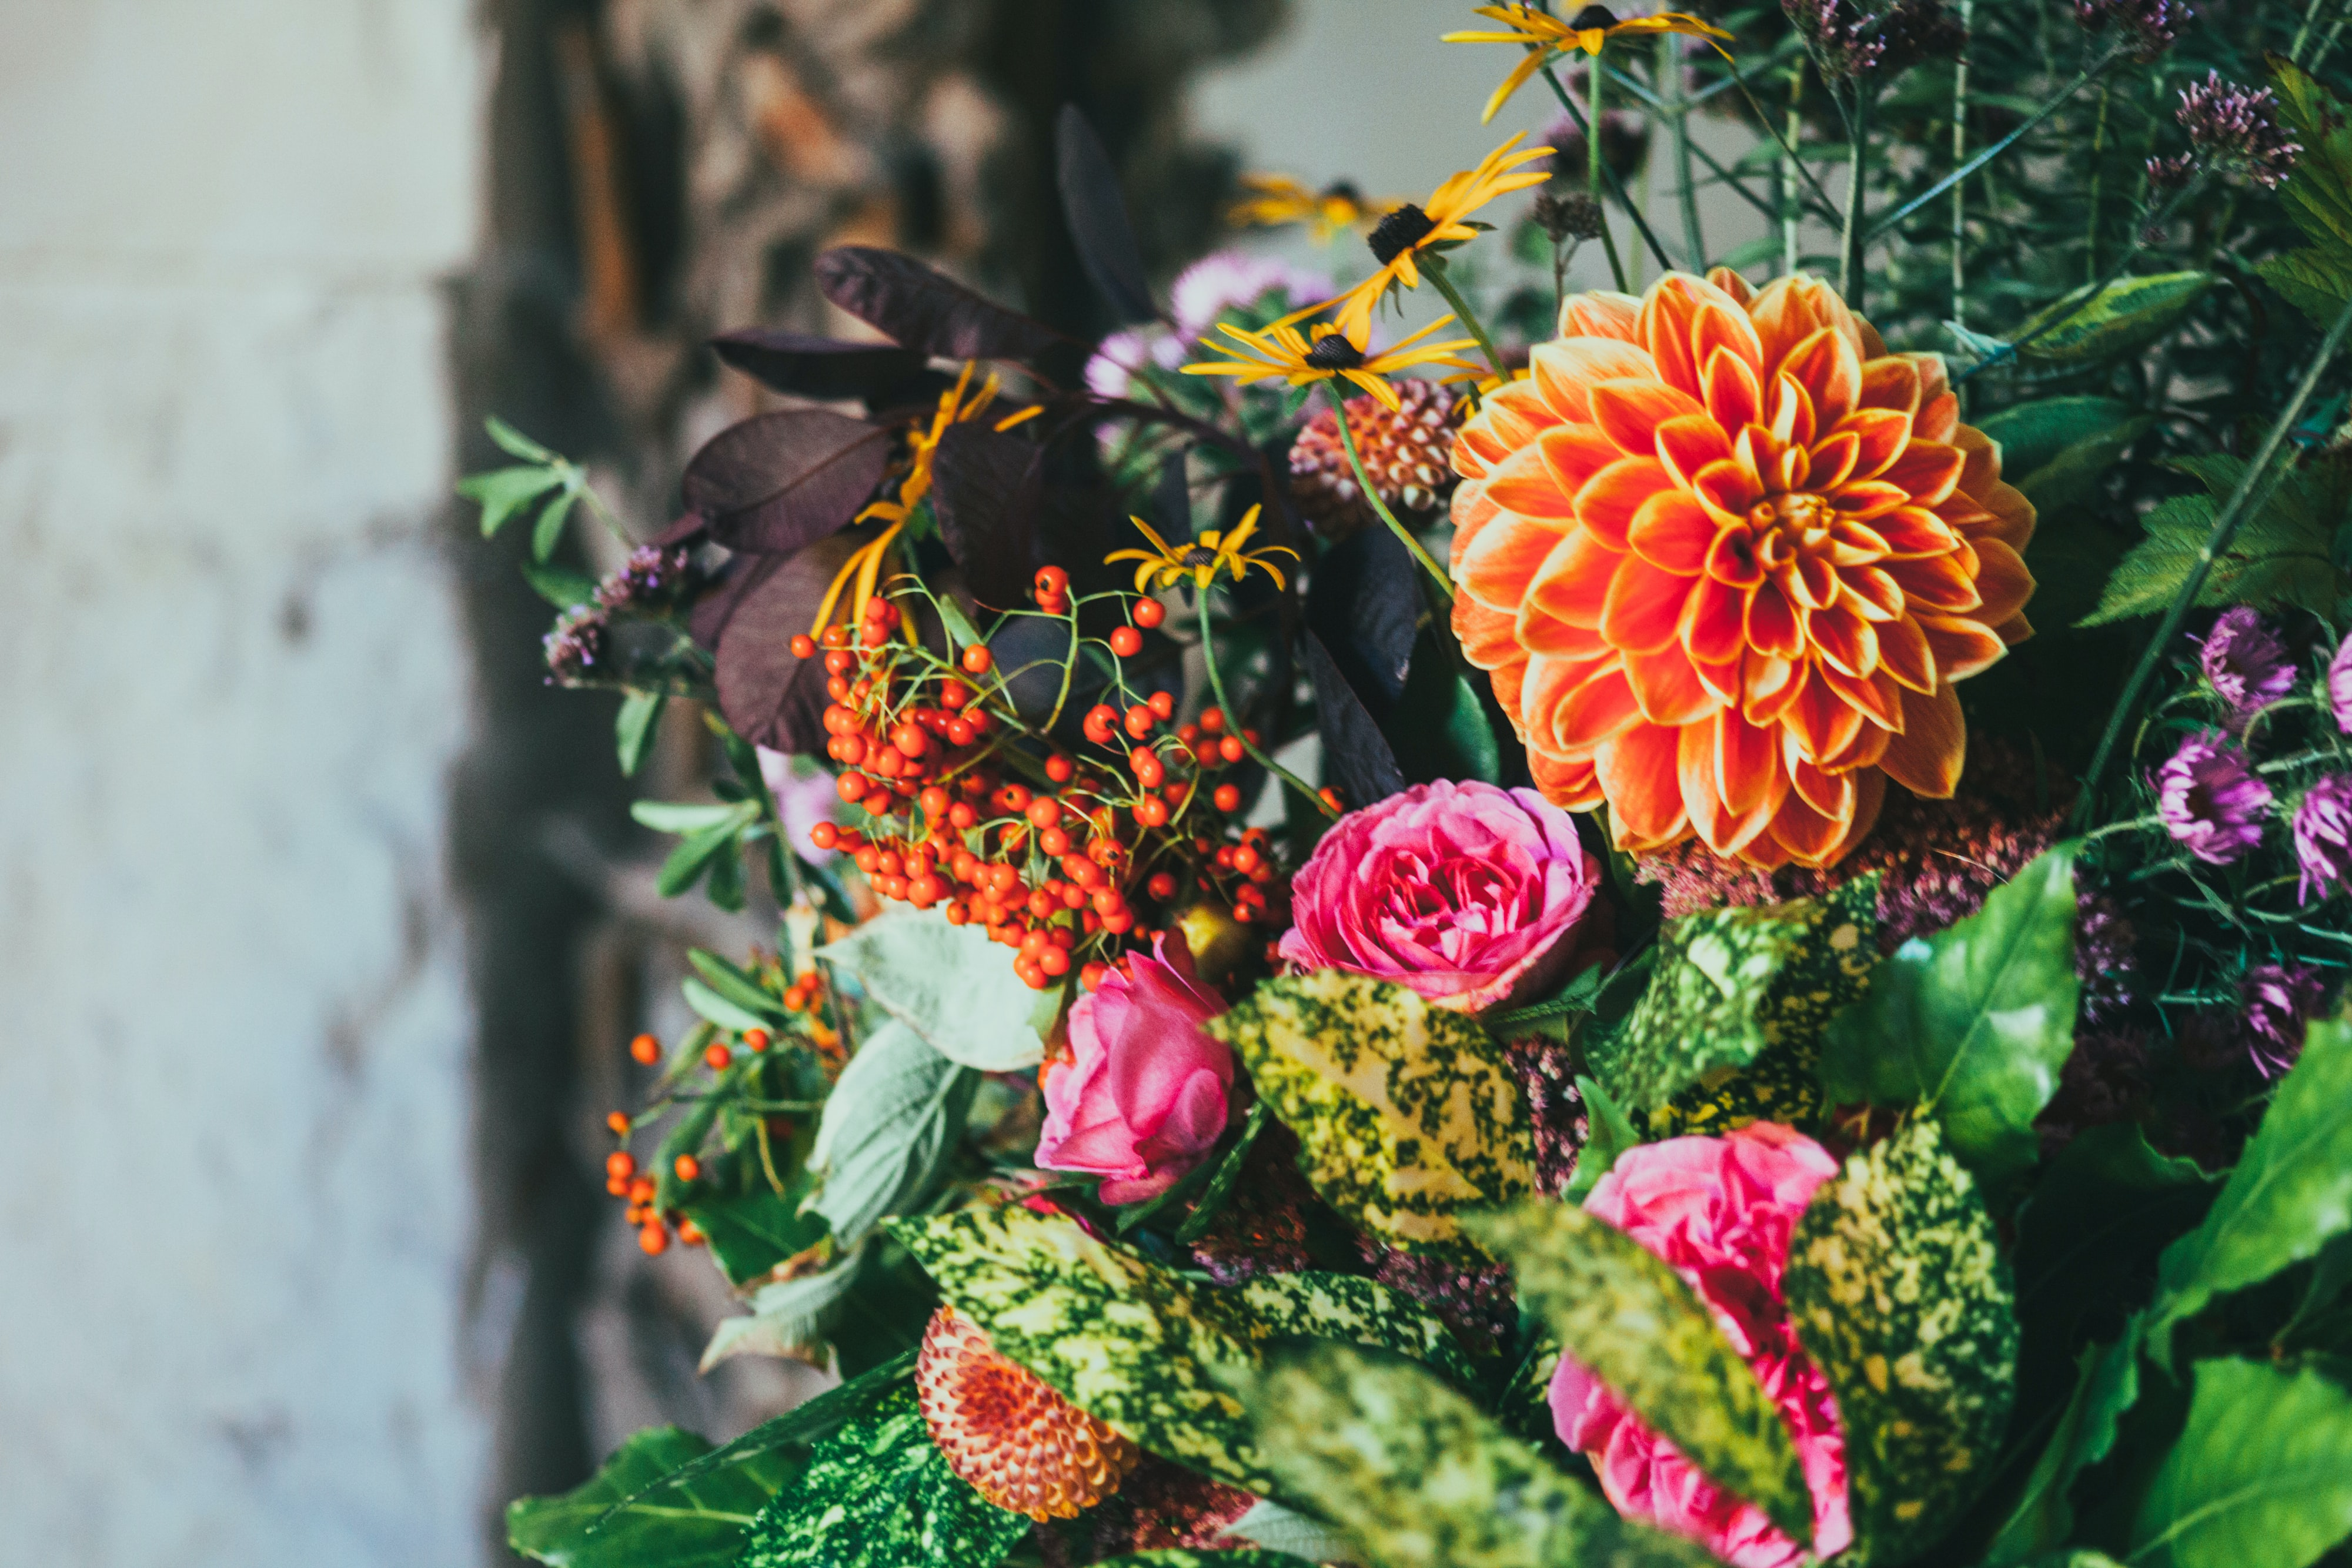 A floral arrangement with dahlias, peonies and rowan berries